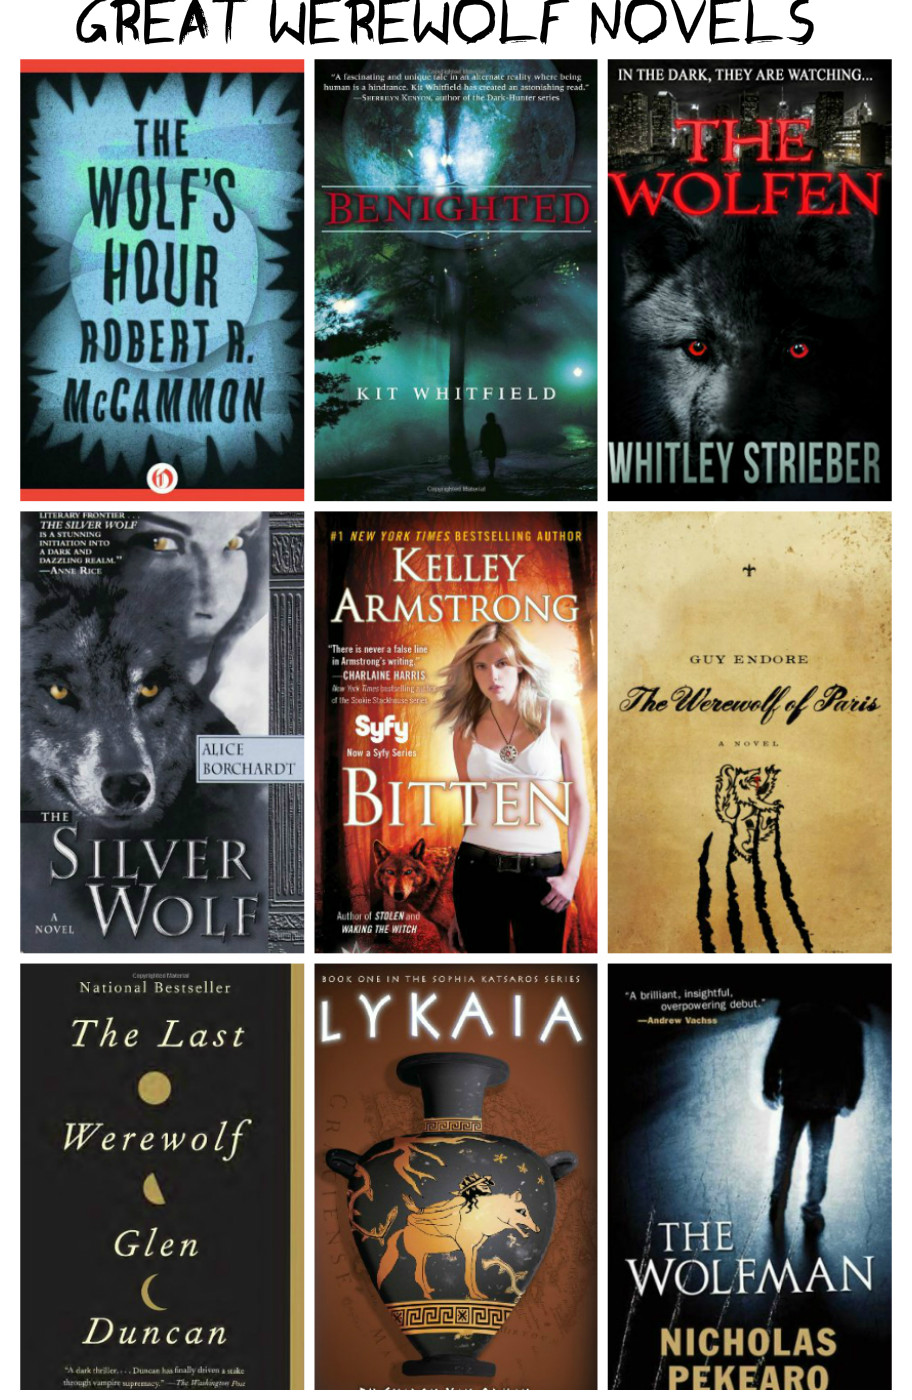 10 Great Werewolf Novels